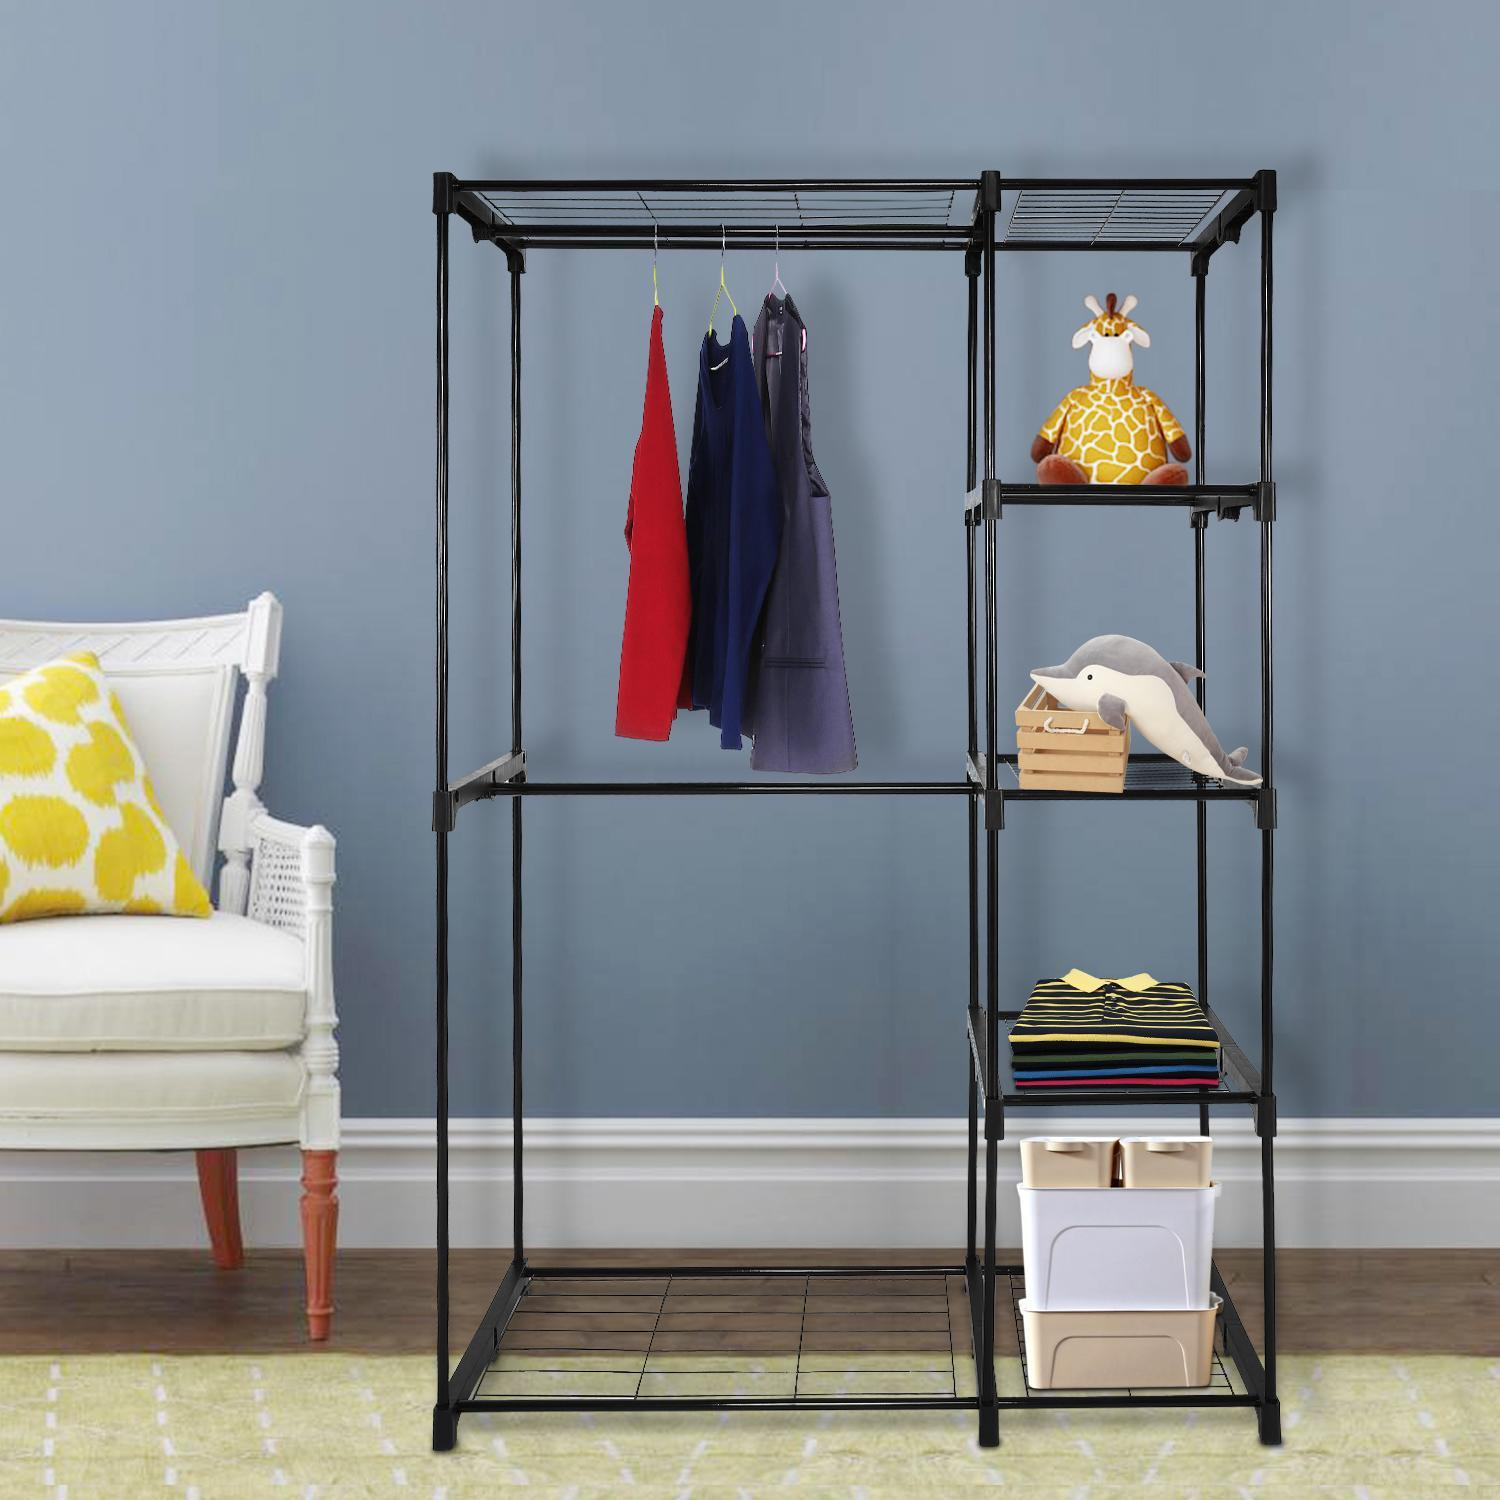 Product Image Closet Organizer Storage Rack Portable Clothes Hanger Home  Garment Shelf